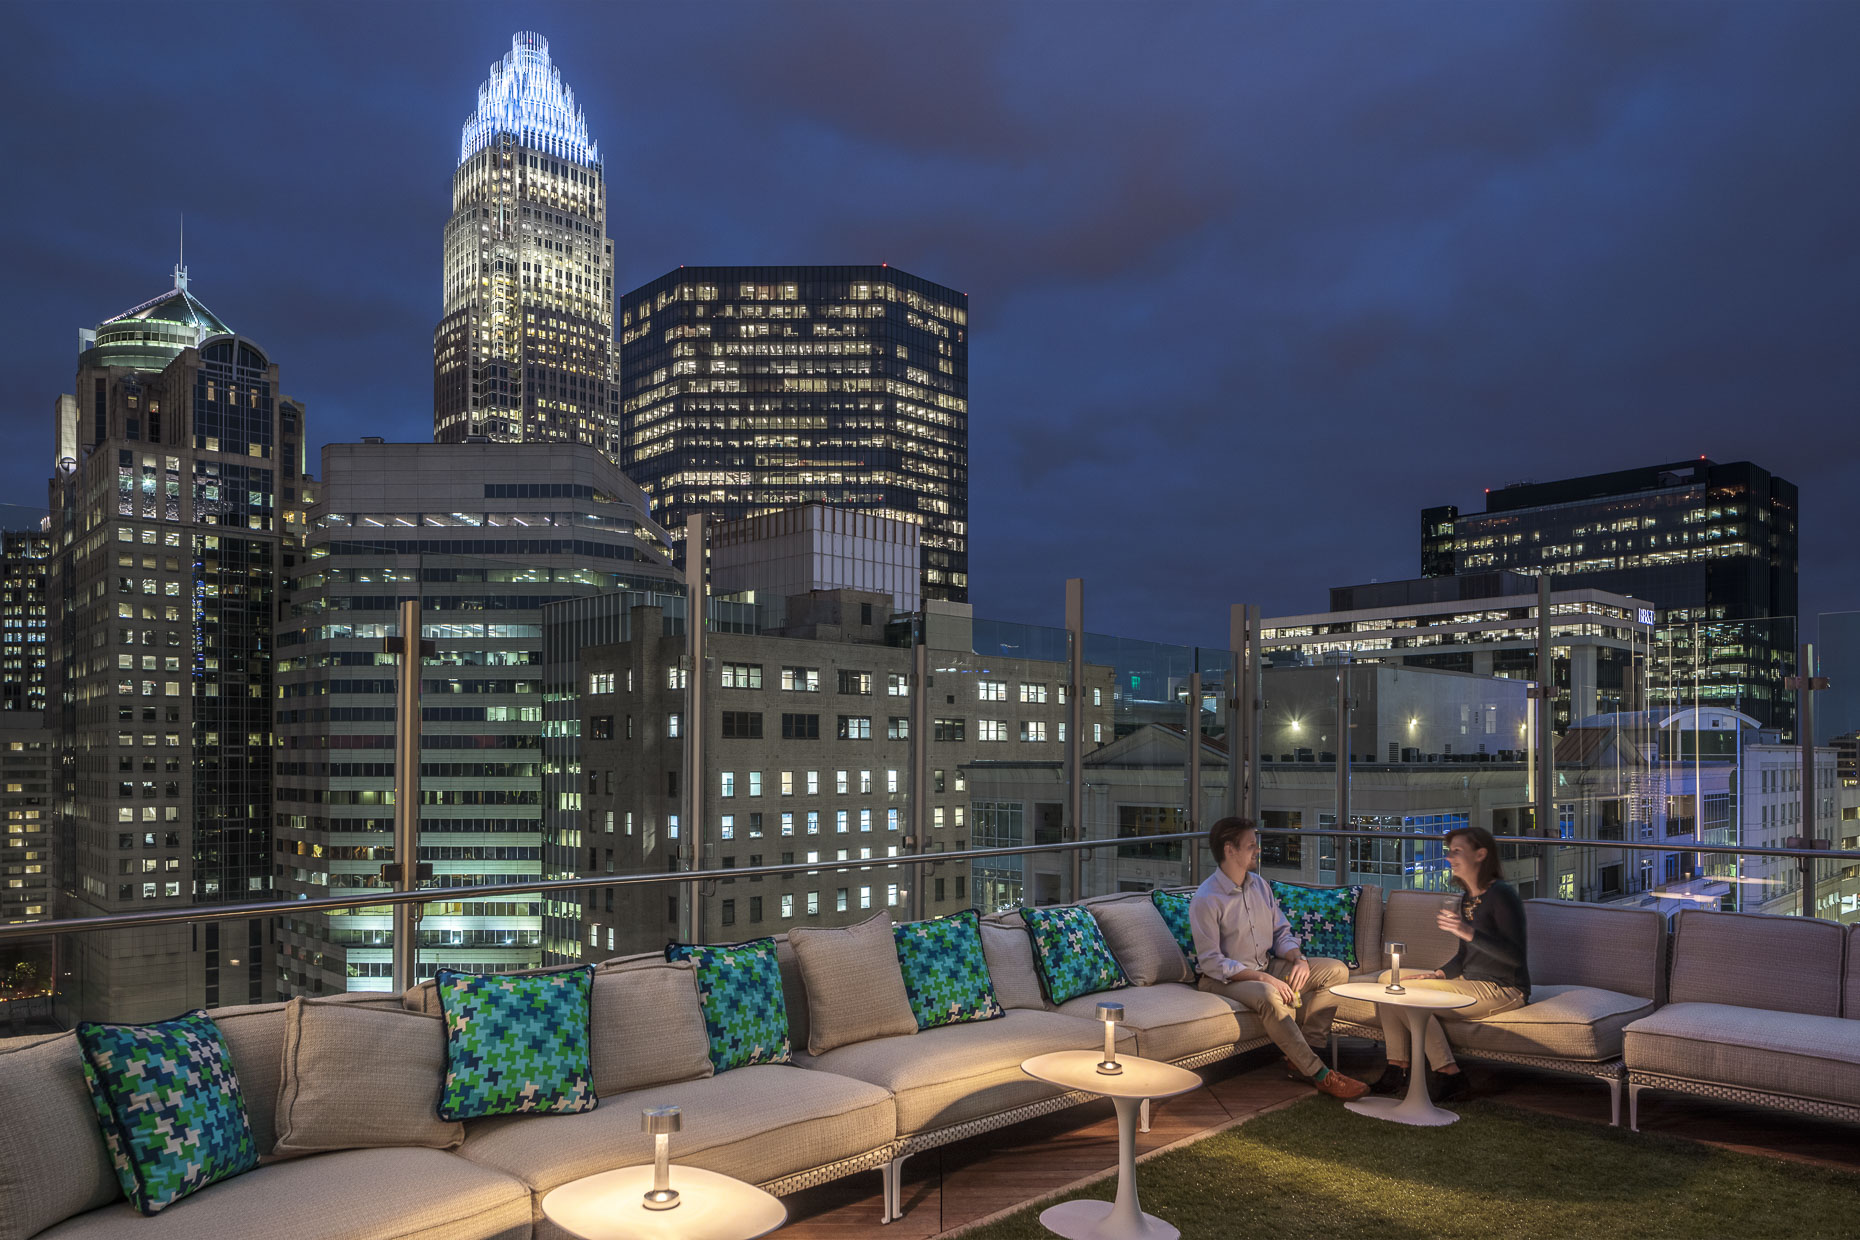 Kimpton Hotel at Tryon Park by Cooper Carry photographed by Brad Feinknopf based in Columbus, Ohio